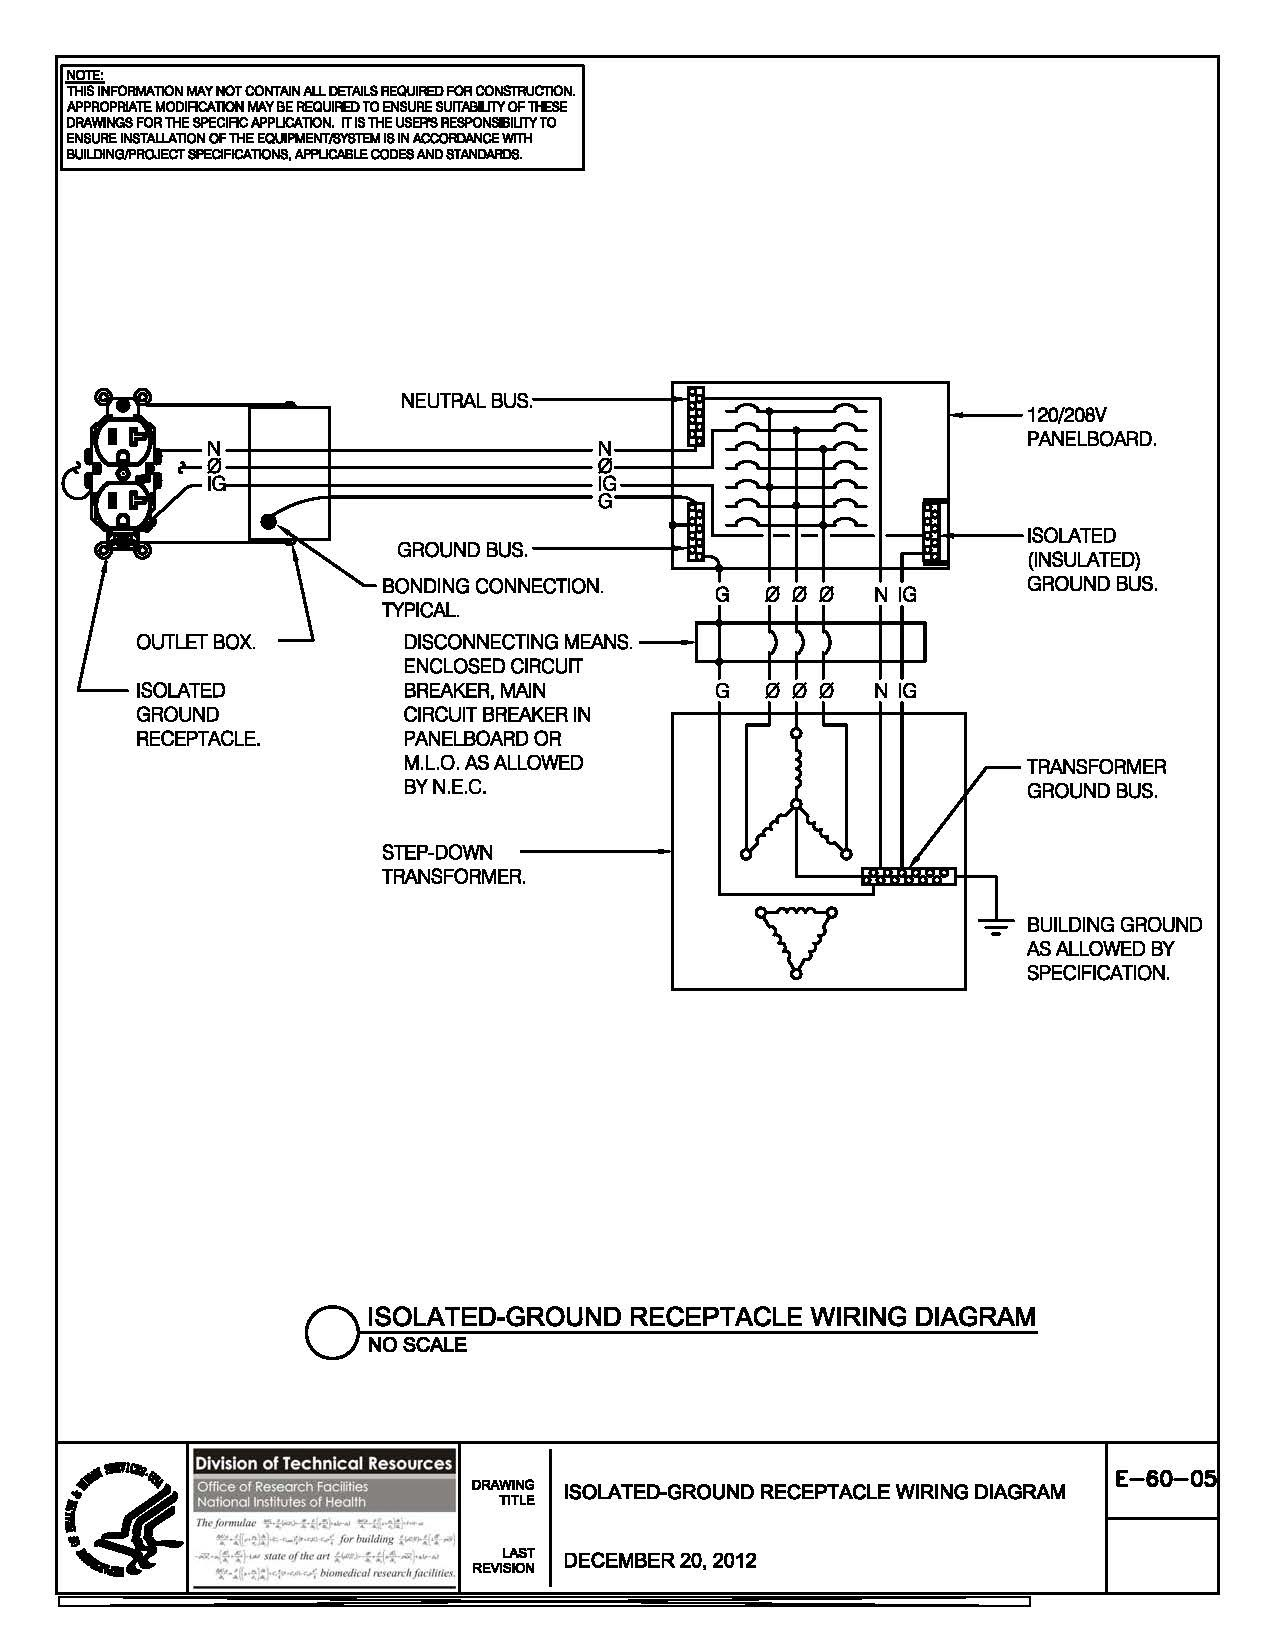 Ac Low Voltage Wiring Diagram | Free Wiring Diagram Basic Ac Wiring Diagram Low Voltage on ac condenser fan motor wiring diagram, central vacuum low voltage wiring diagram, ac control wiring diagram, ac thermostat wiring diagram, ac furnace wiring diagram, ge rr7 low voltage relay wiring diagram, air conditioning refrigeration cycle diagram, ac motor capacitor wiring diagram, ac contactor wiring diagram,